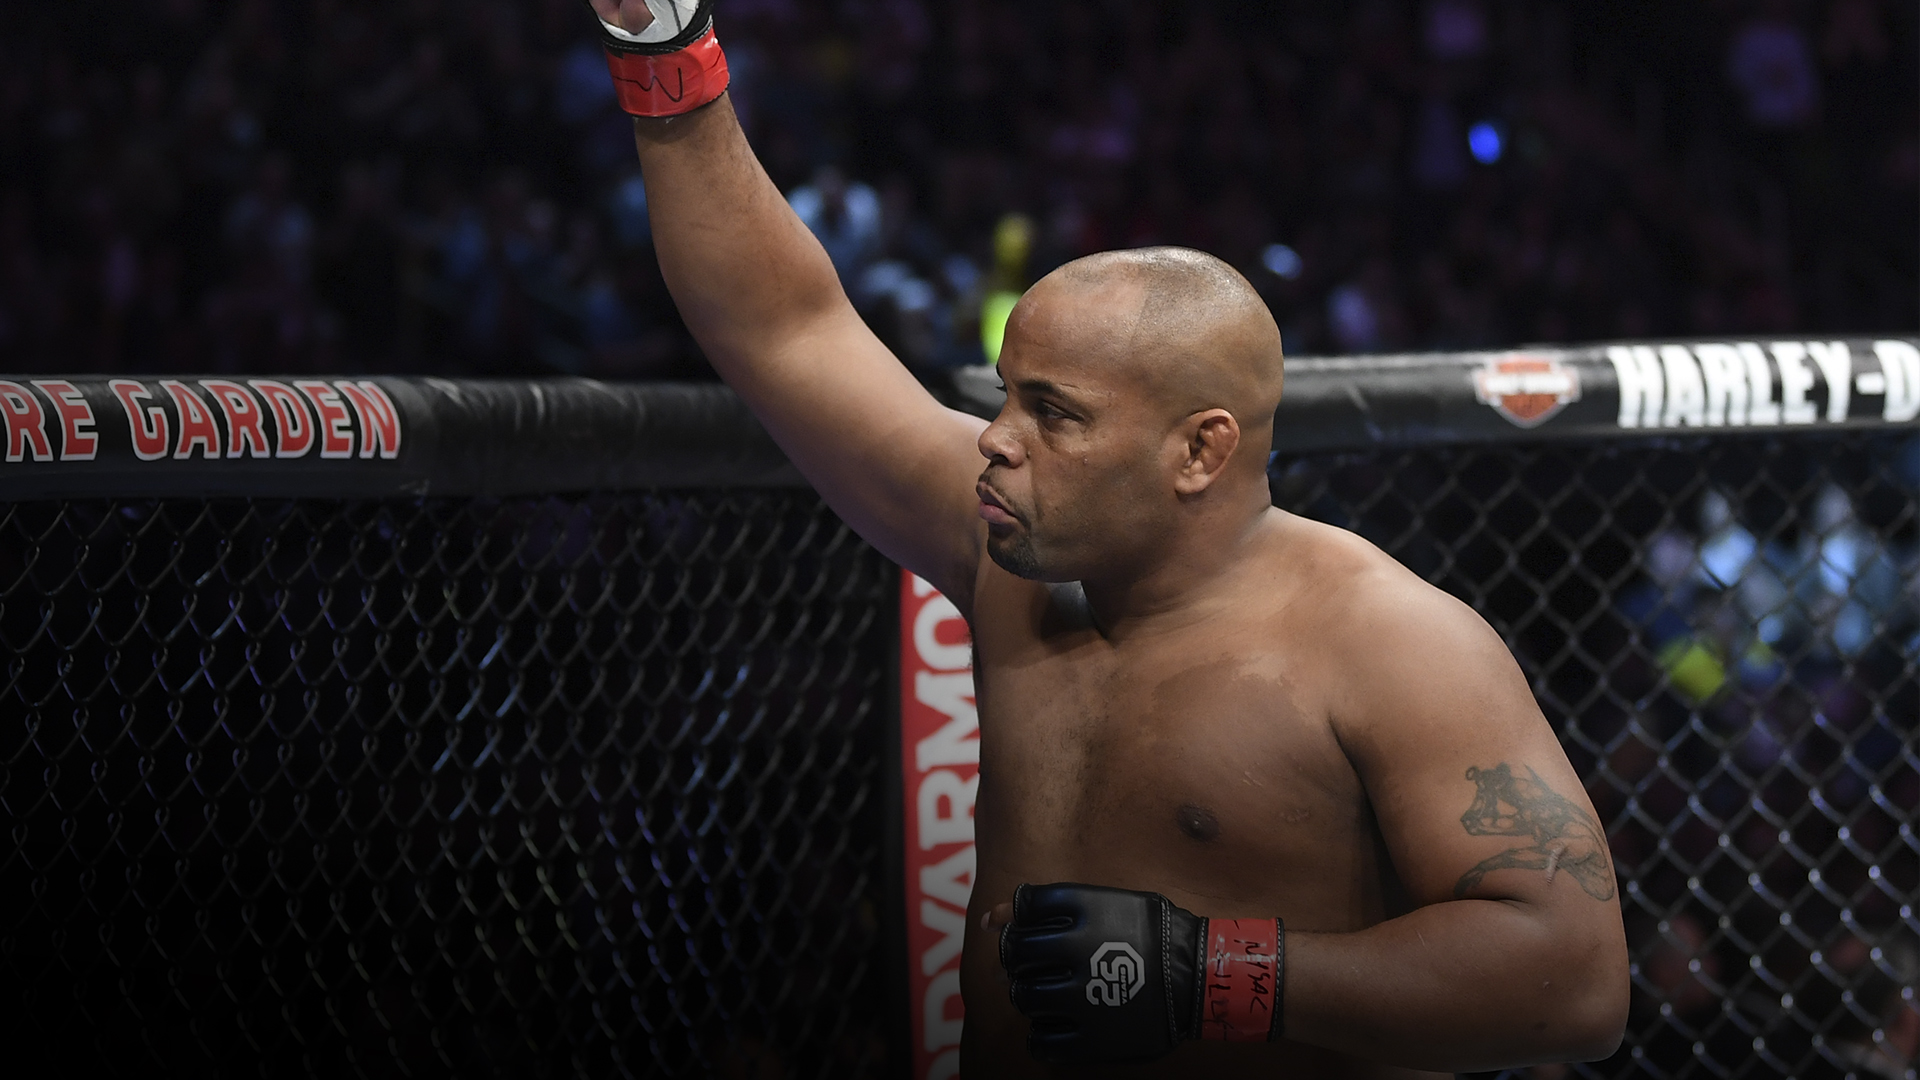 Daniel Cormier prepares to fight Derrick Lewis in their UFC heavyweight championship bout during the UFC 230 event inside Madison Square Garden on November 3, 2018 in New York, New York. (Photo by Jeff Bottari/Zuffa LLC)